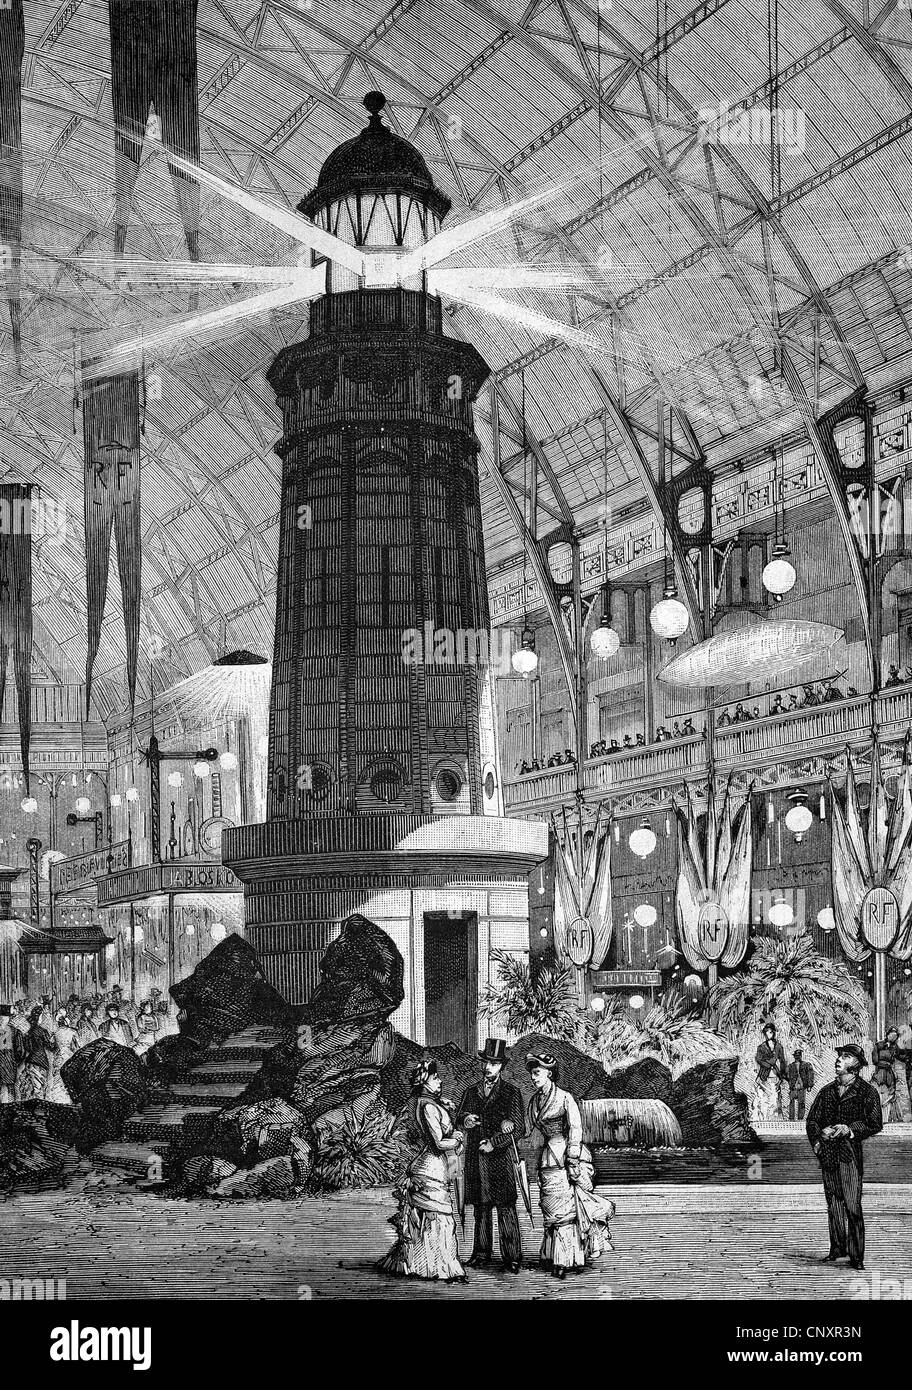 The Electrical Exhibition in Paris in 1881, France, historical engraving of 1883 - Stock Image